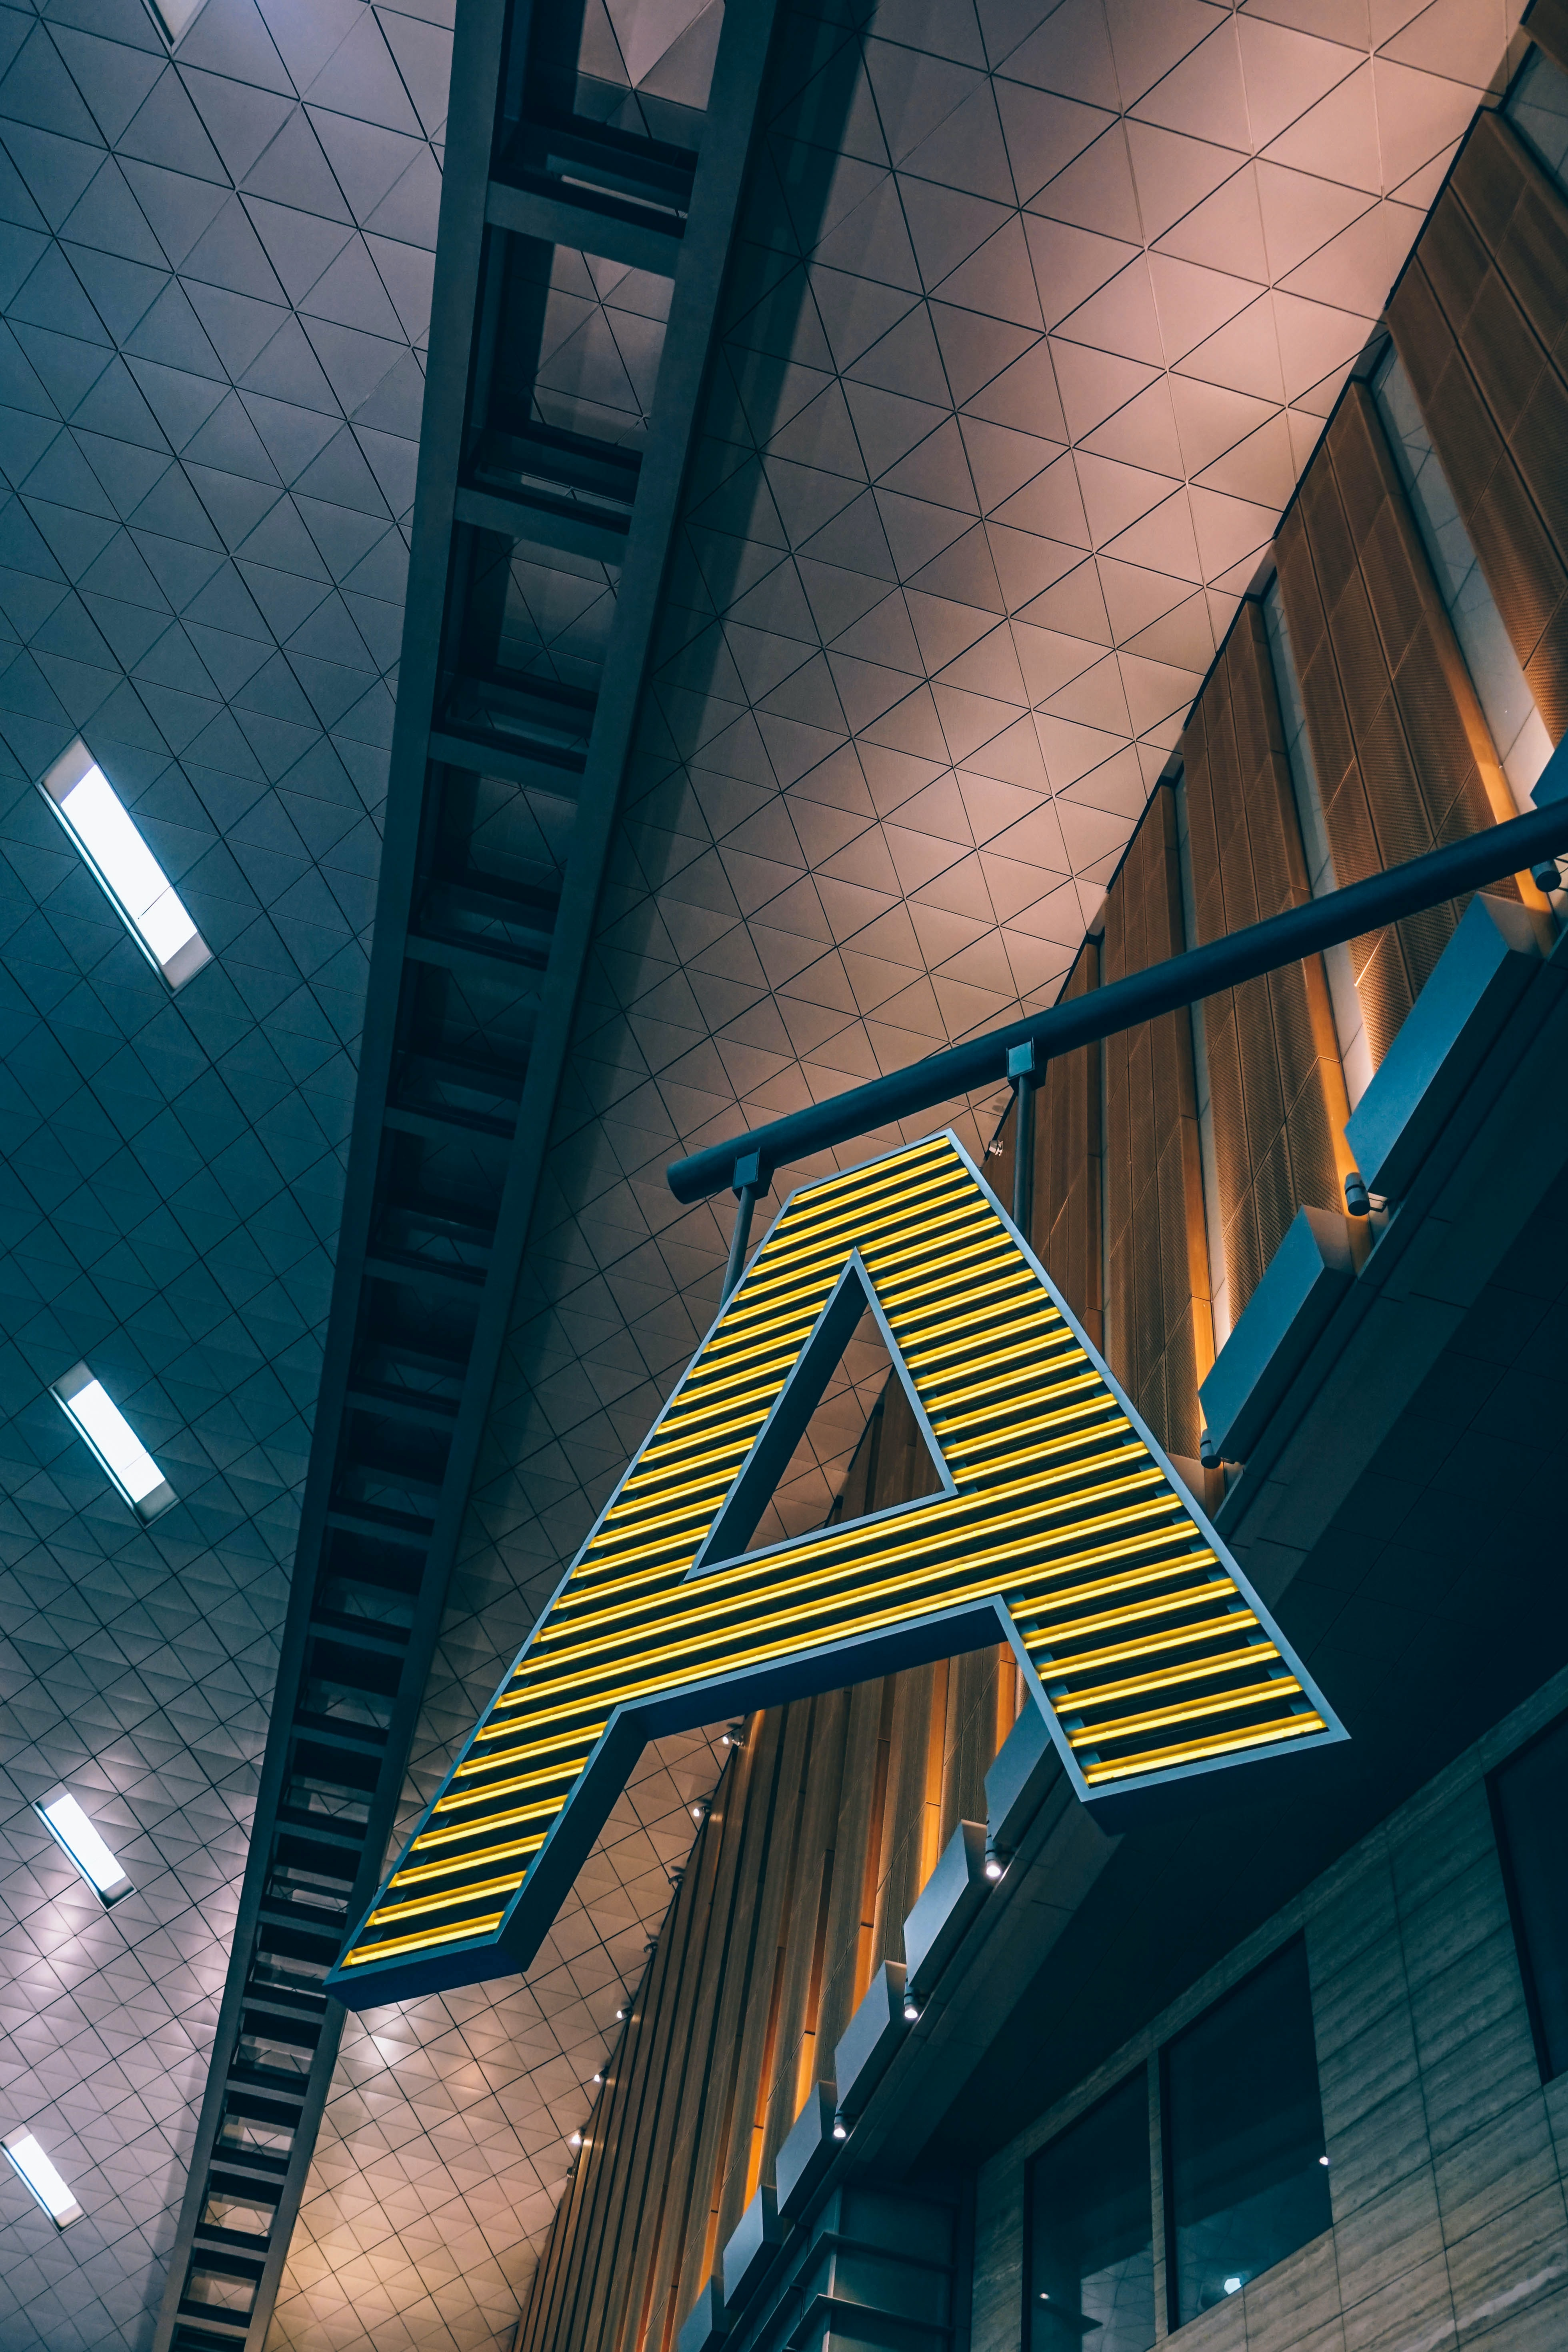 architectural photography letter A signage